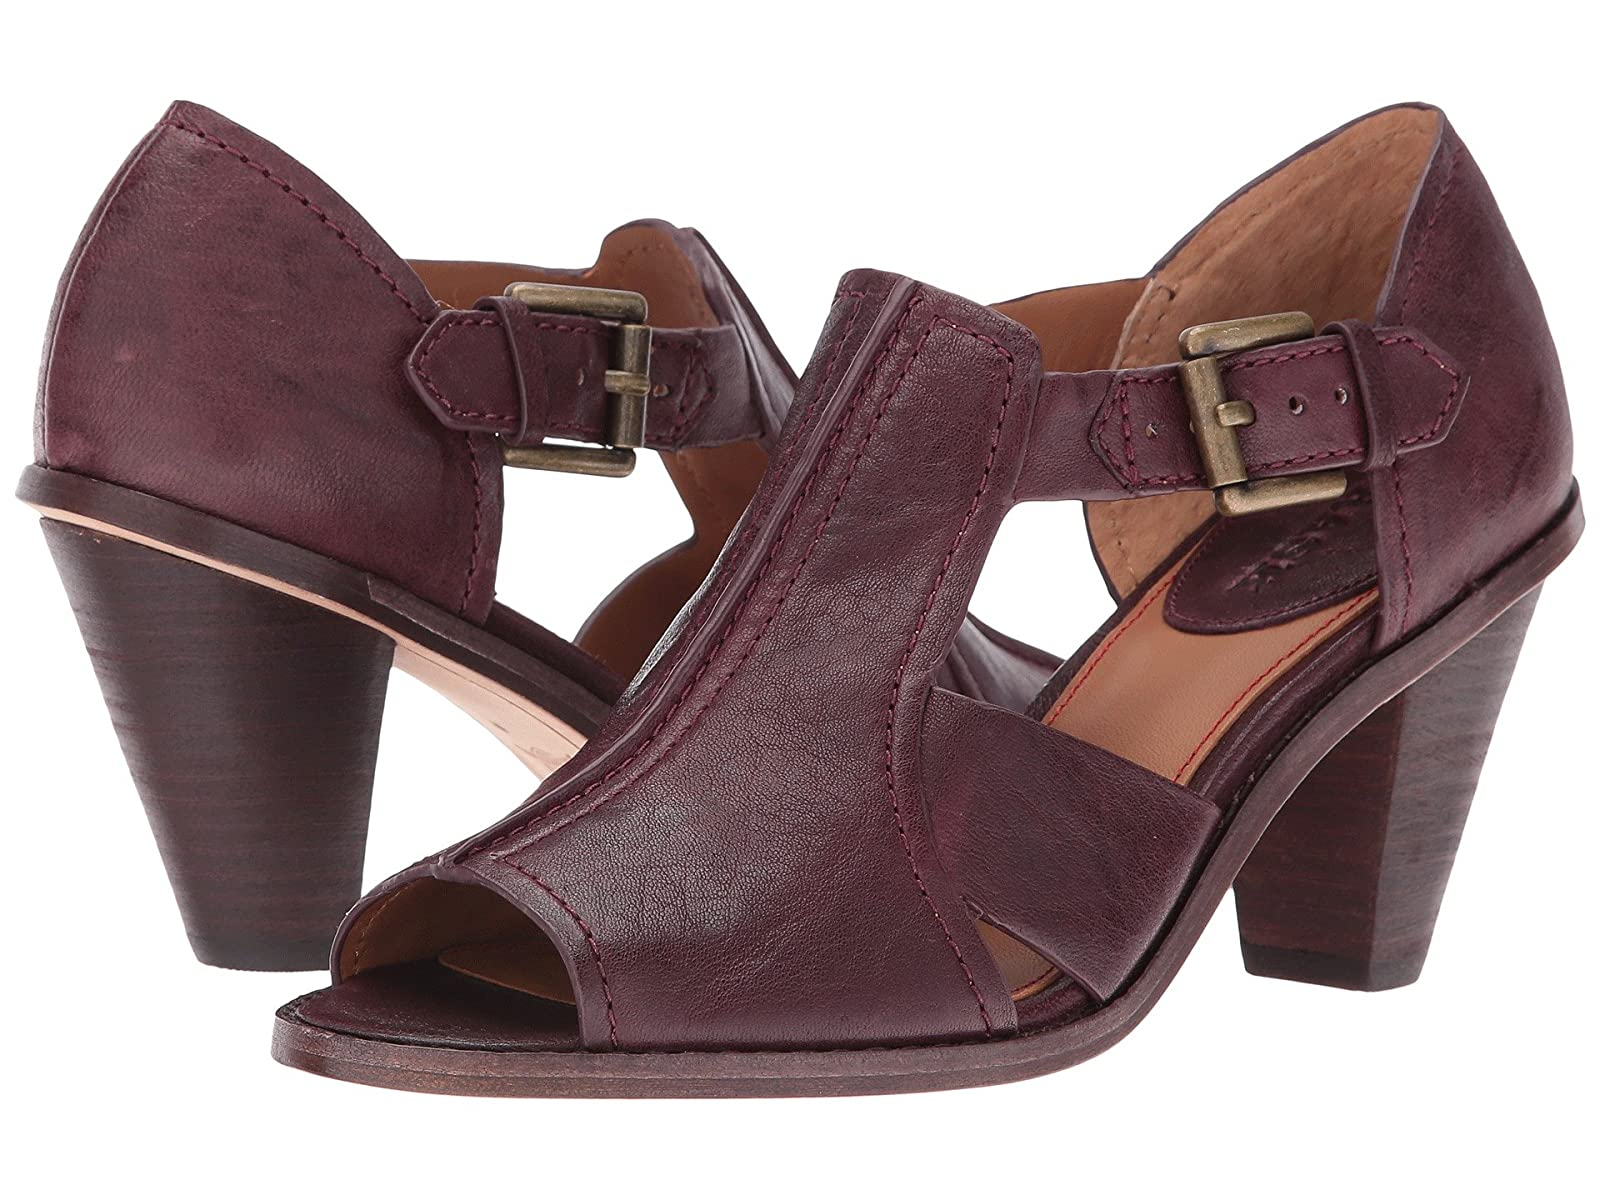 Trask GingerCheap and distinctive eye-catching shoes